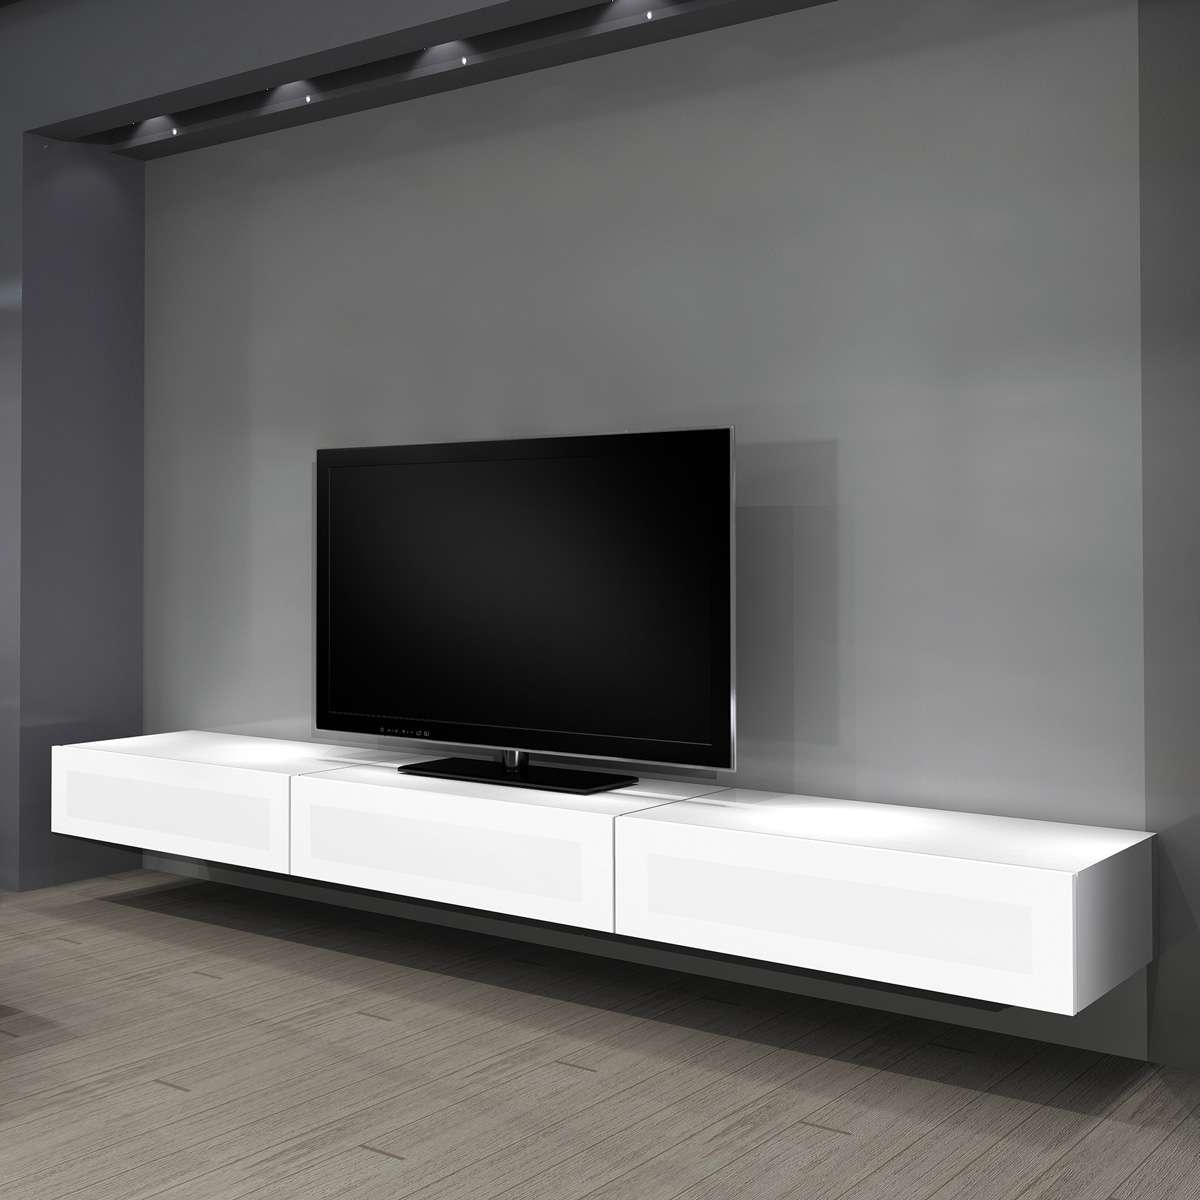 Floating Long White Wooden Cabinet With Tv On The Top Placed On Pertaining To Long White Tv Cabinets (View 5 of 20)